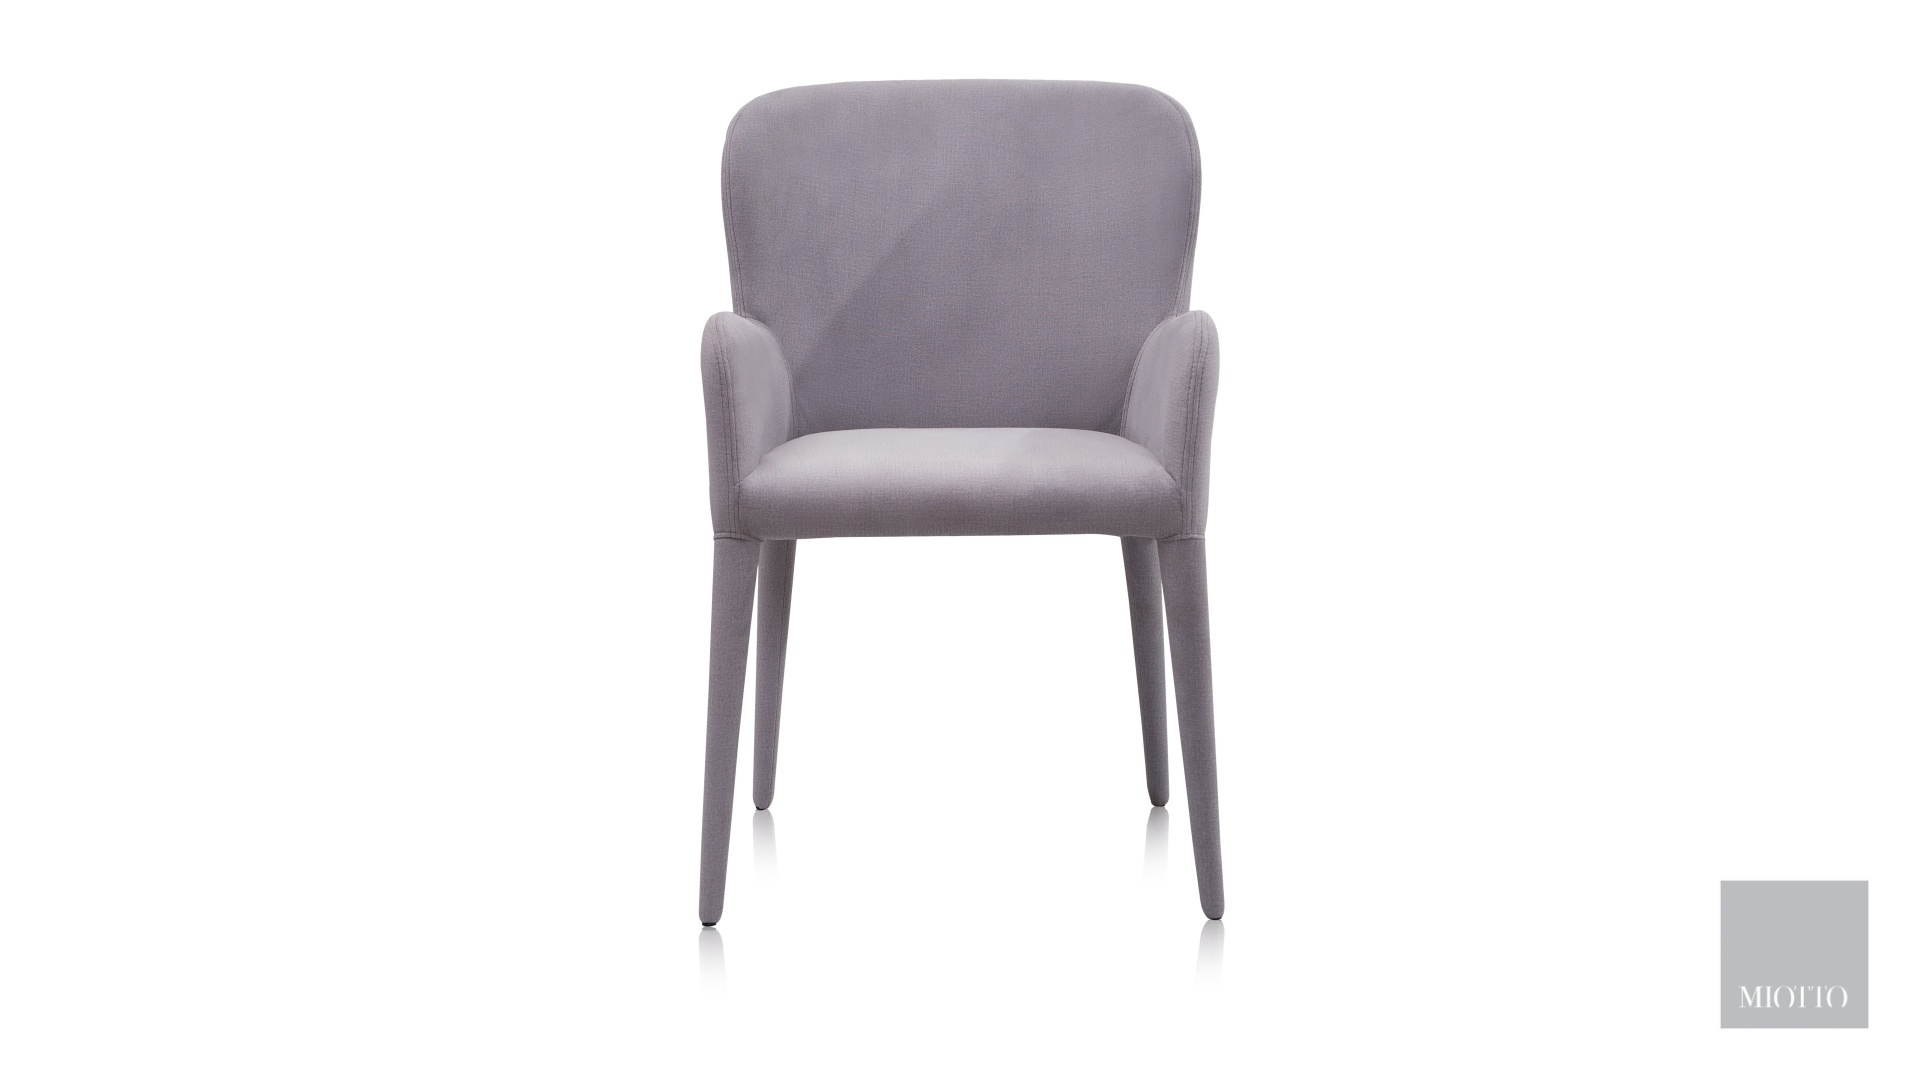 miotto_Aviano dining armchair grey front miotto furniture